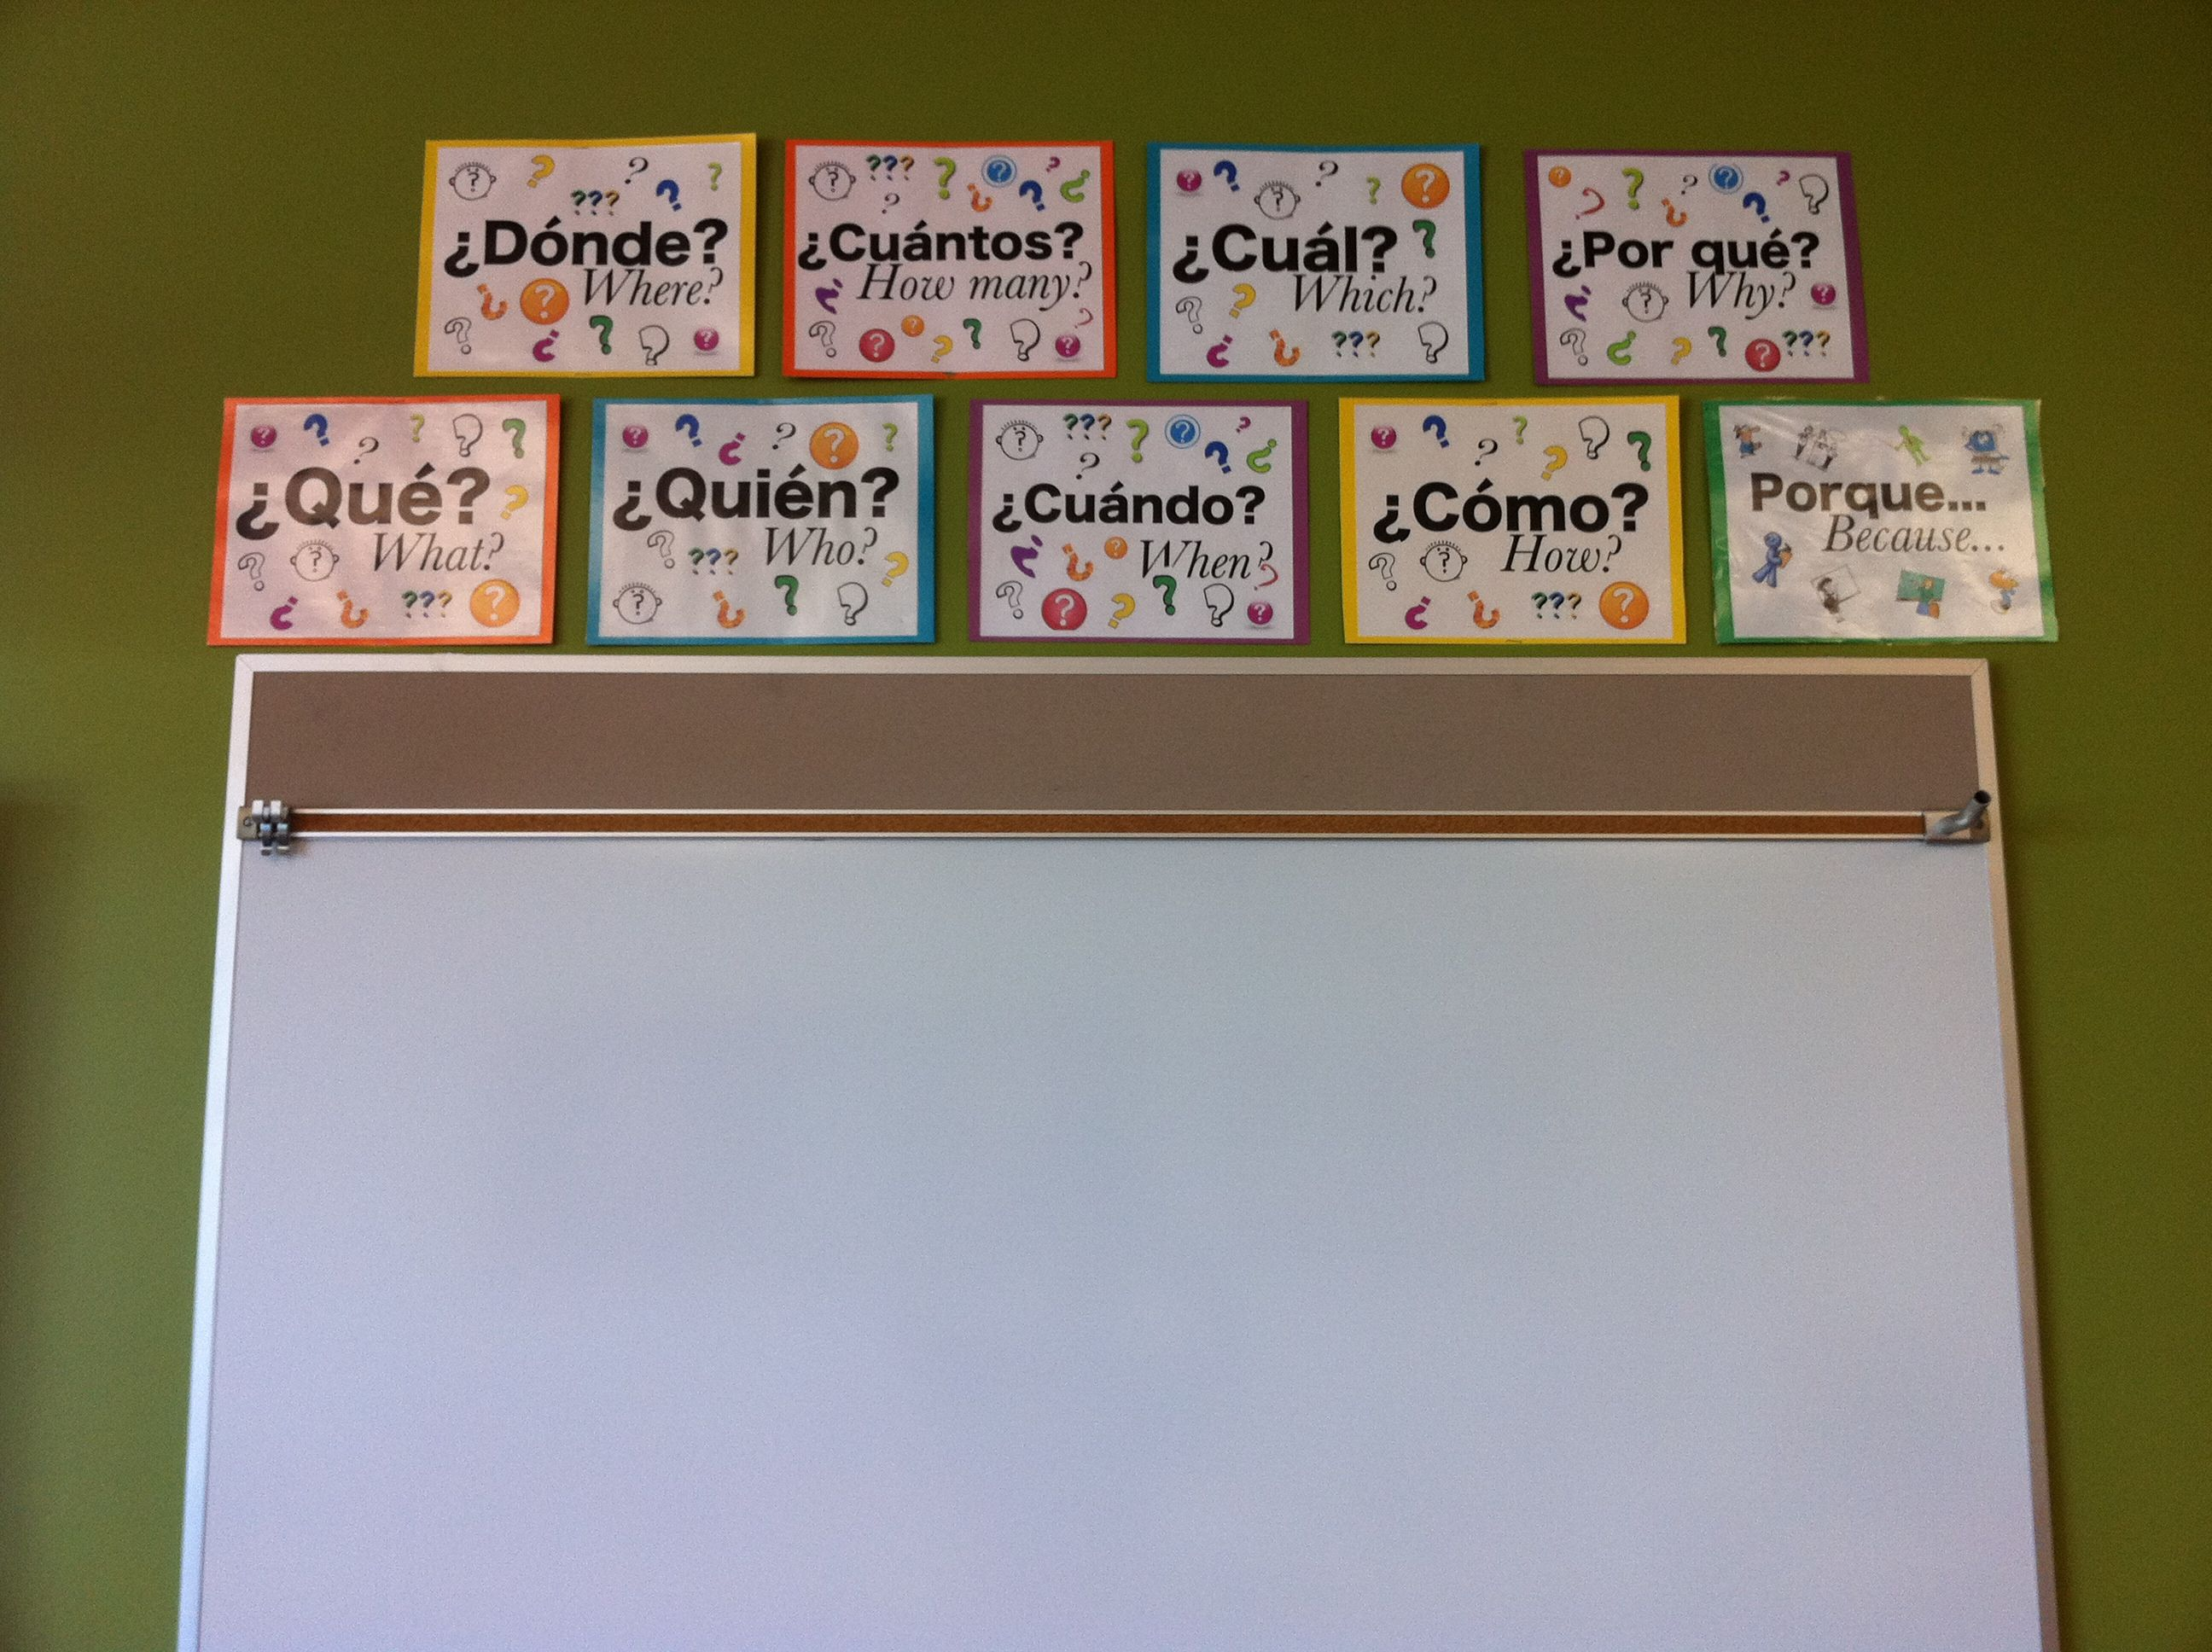 Spanish Teacher Classroom Decorations ~ Posters the comprehensible classroom